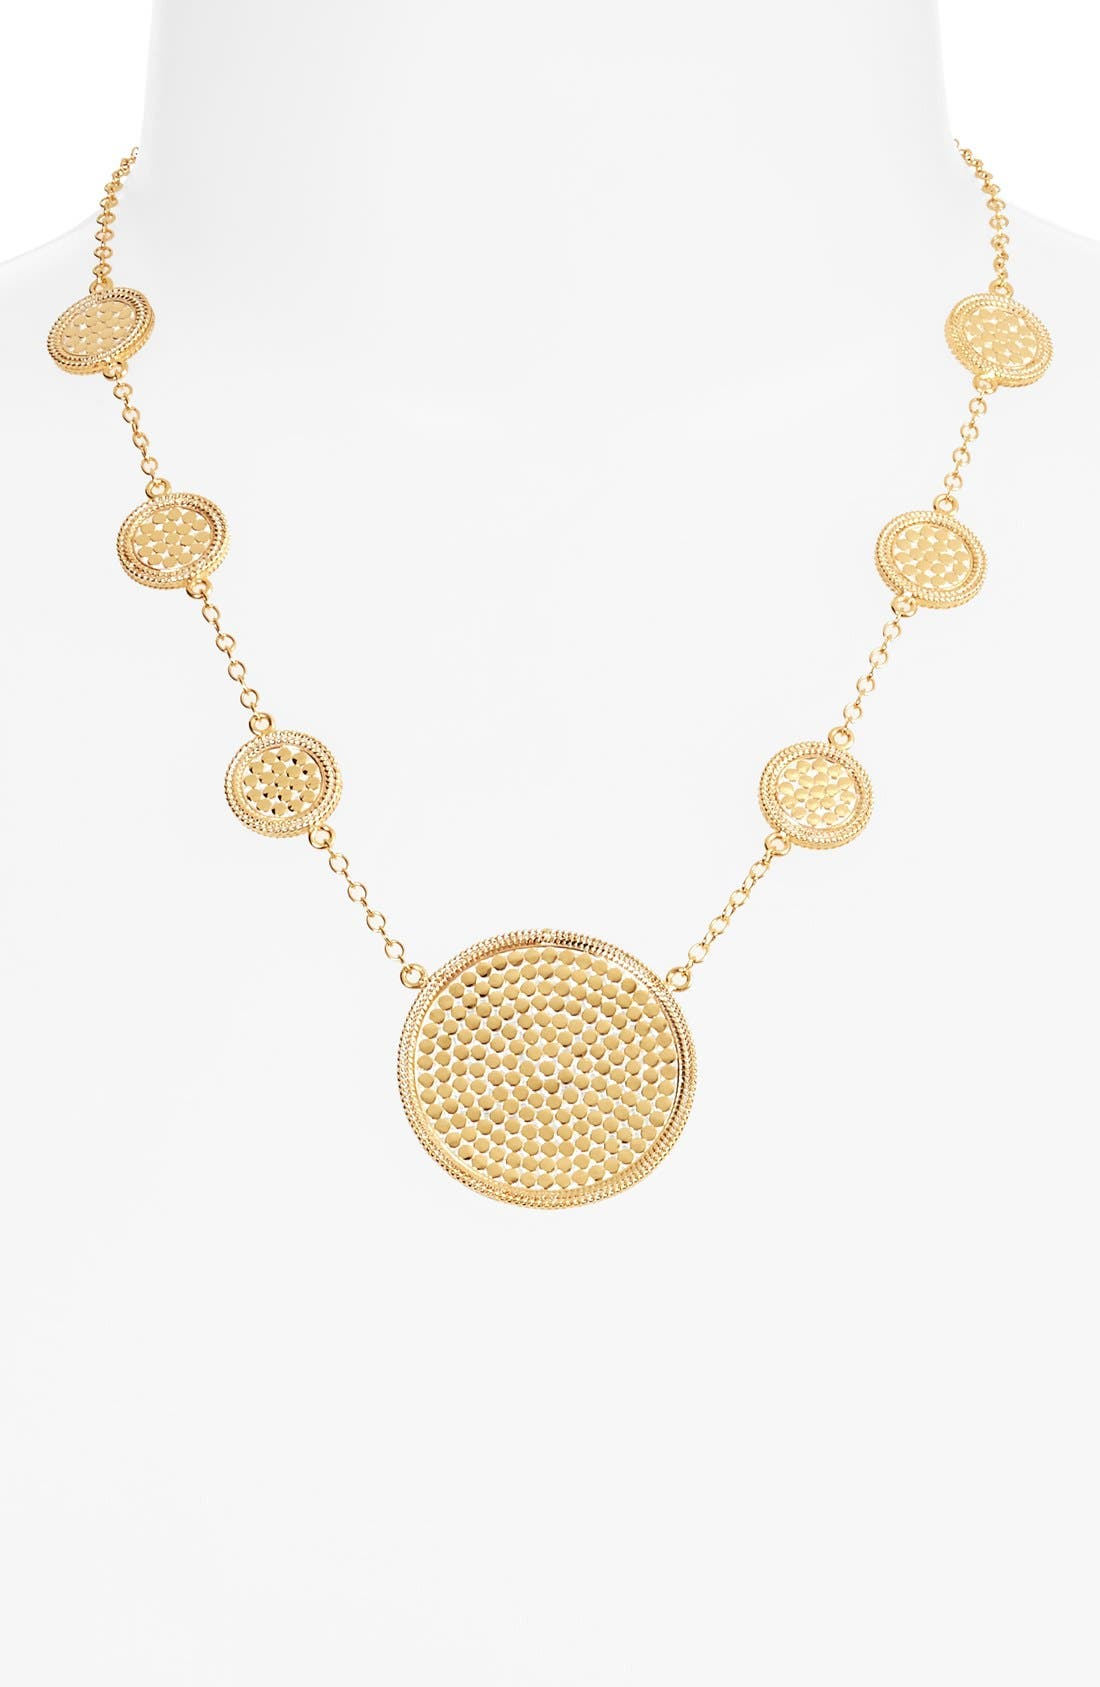 Main Image - Anna Beck 'Gili' Frontal Station Necklace